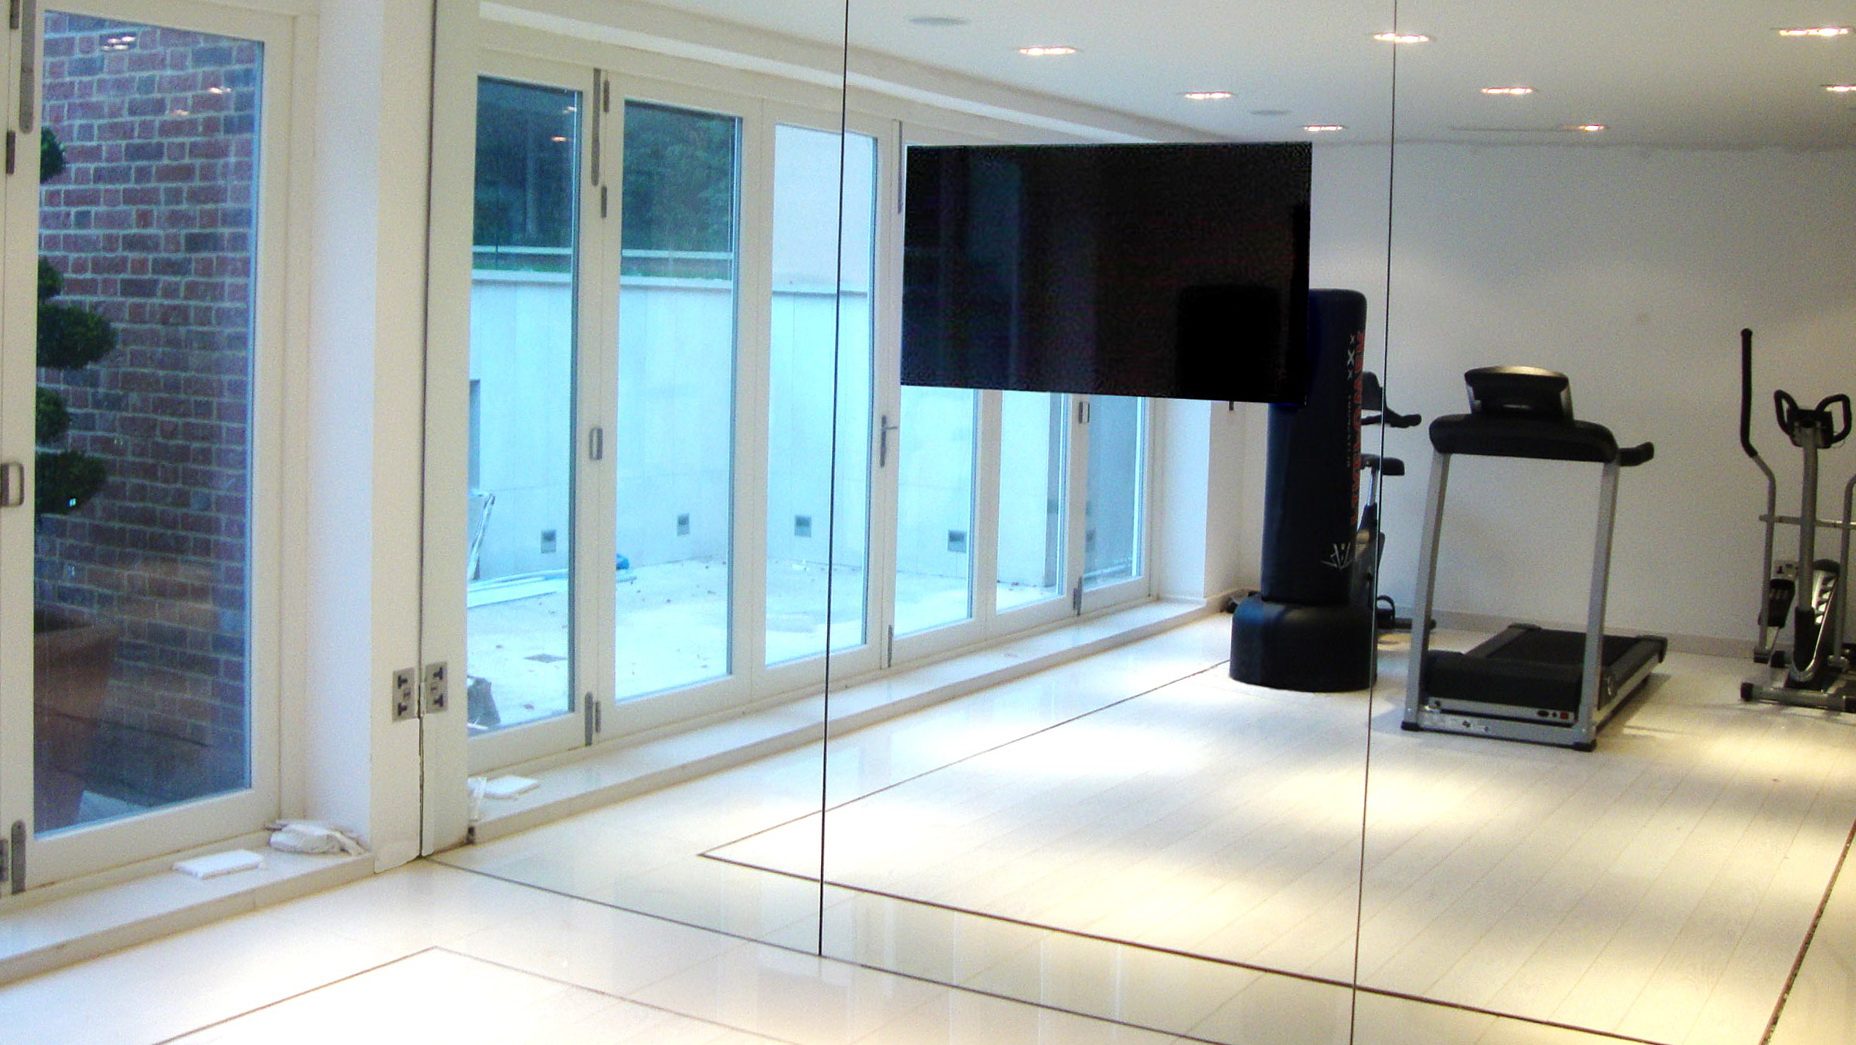 Home Gym Mirrors Home Depot – Cjl Webcare Solutions With Famous Wall Mirrors For Home Gym (View 12 of 20)